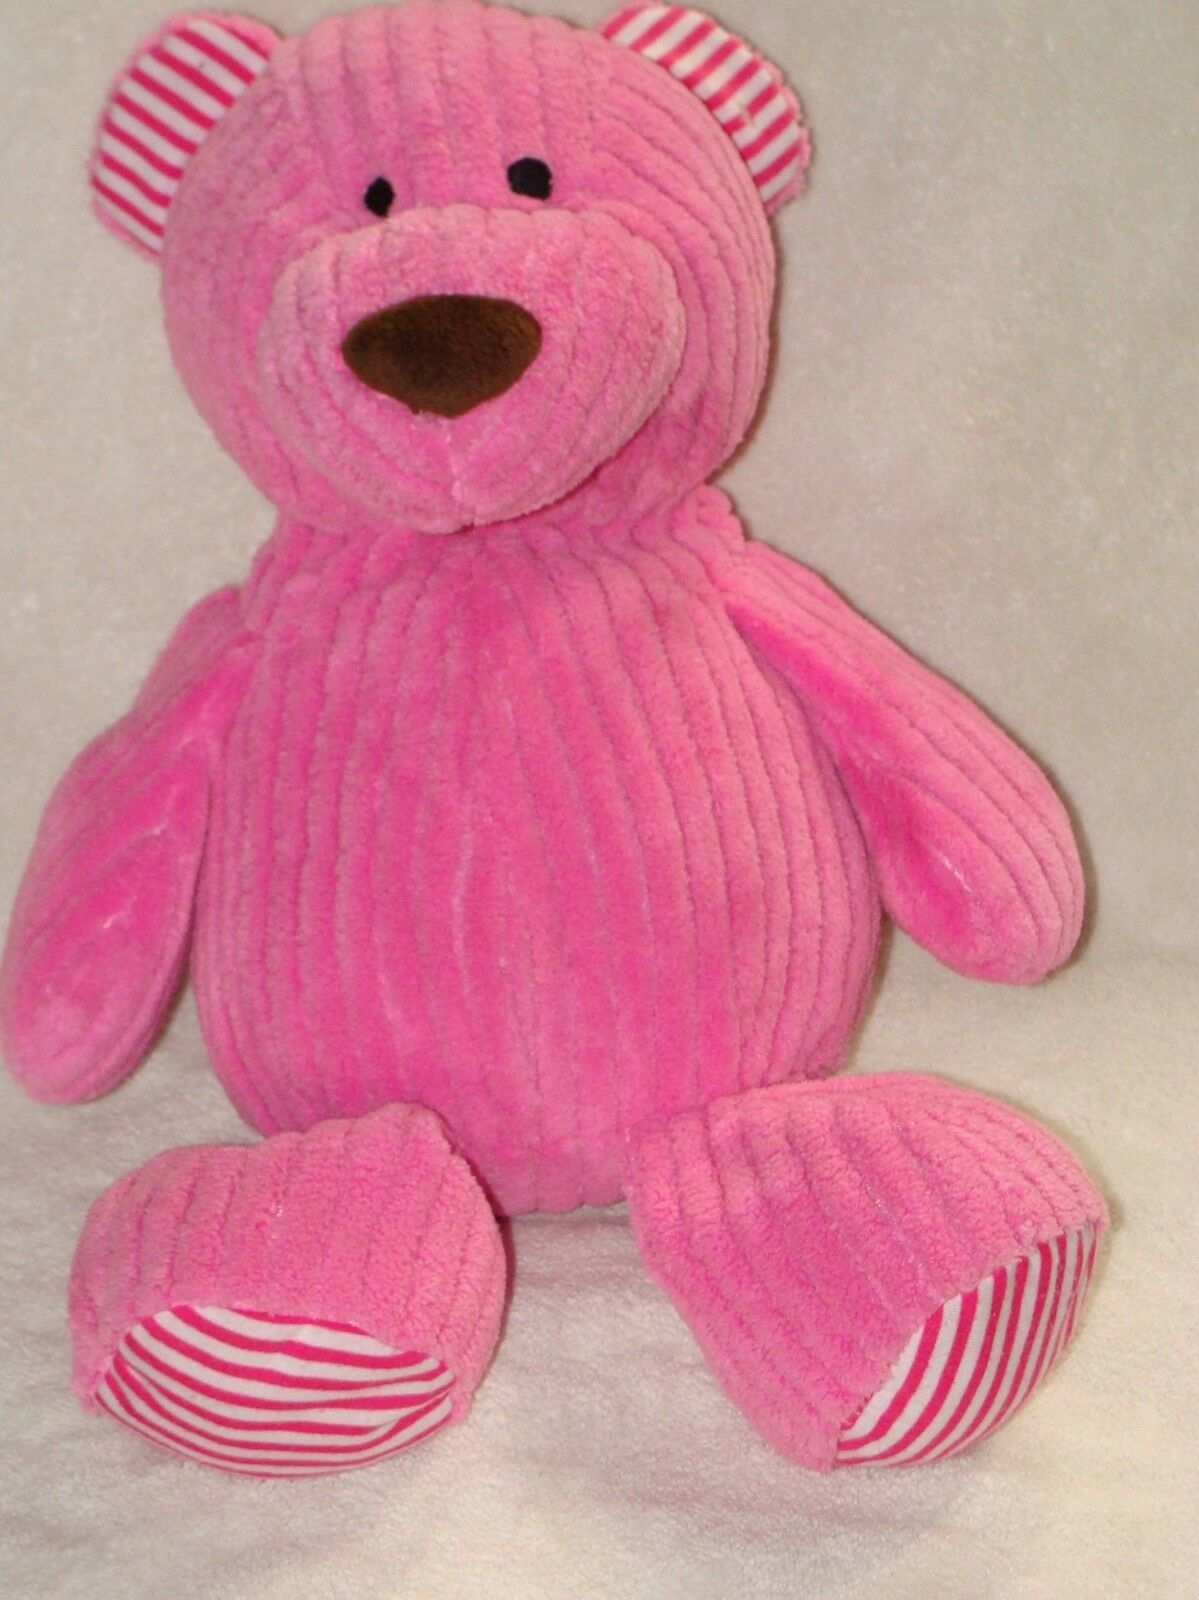 Animal Adventure Plush Teddy Bear Pink Corduroy Chenille Stripe 16  2014